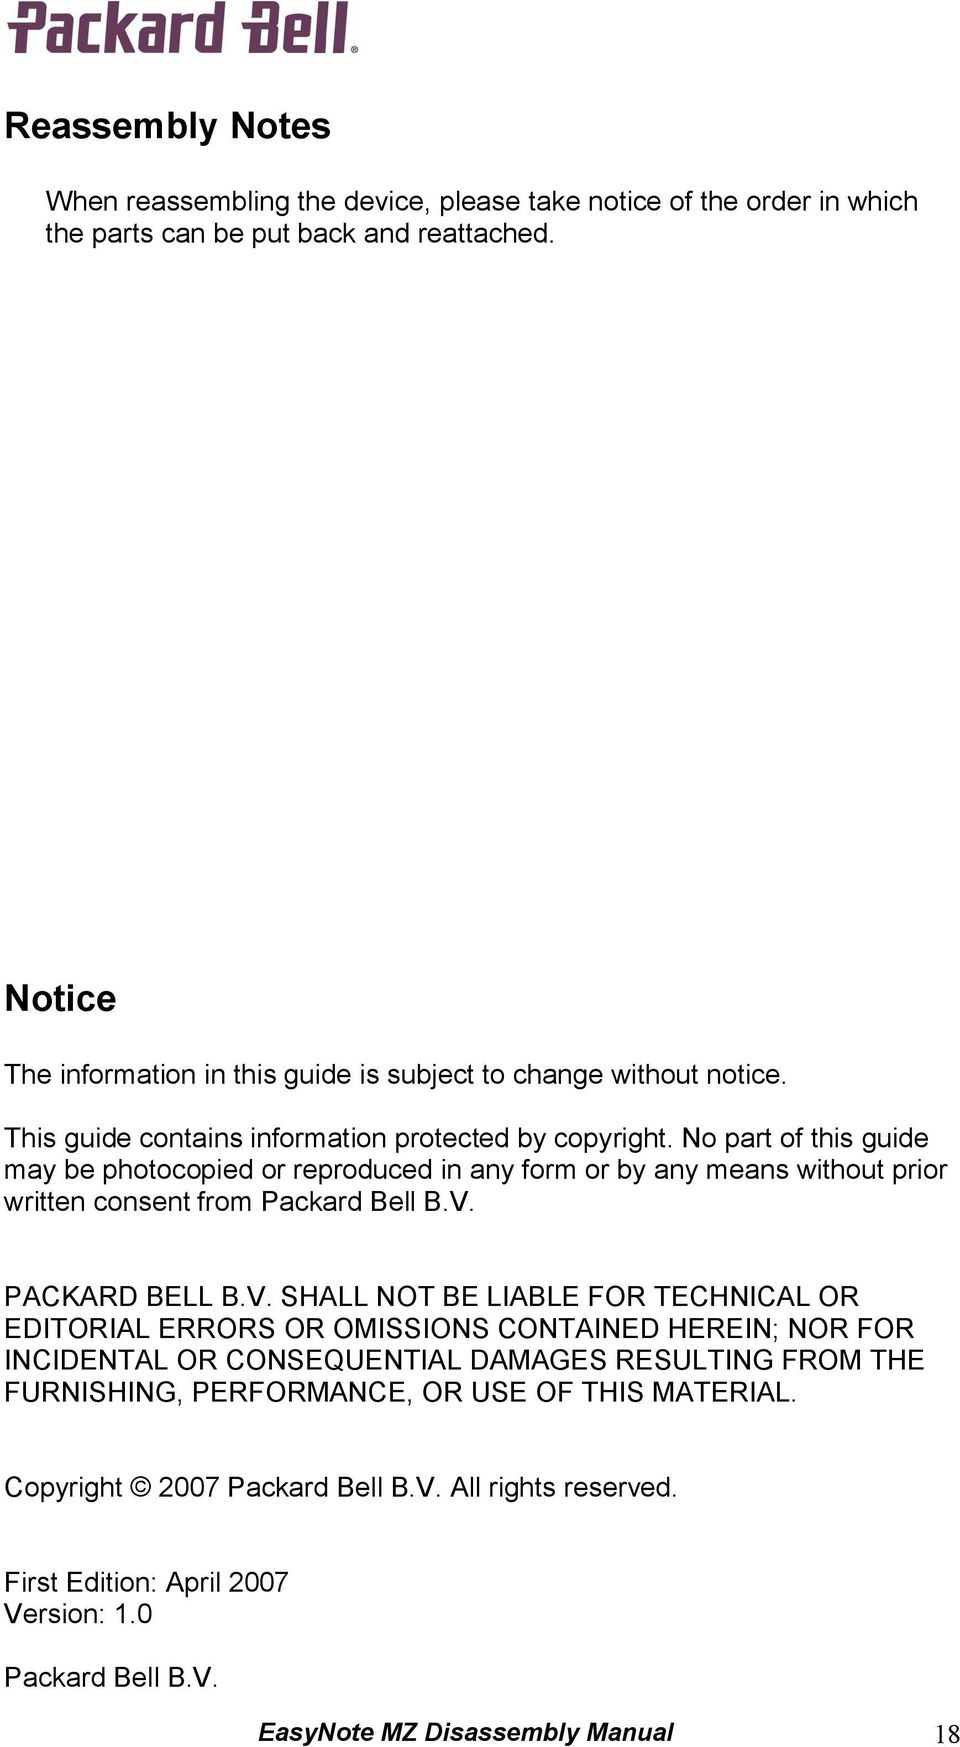 No part of this guide may be photocopied or reproduced in any form or by any means without prior written consent from Packard Bell B.V.